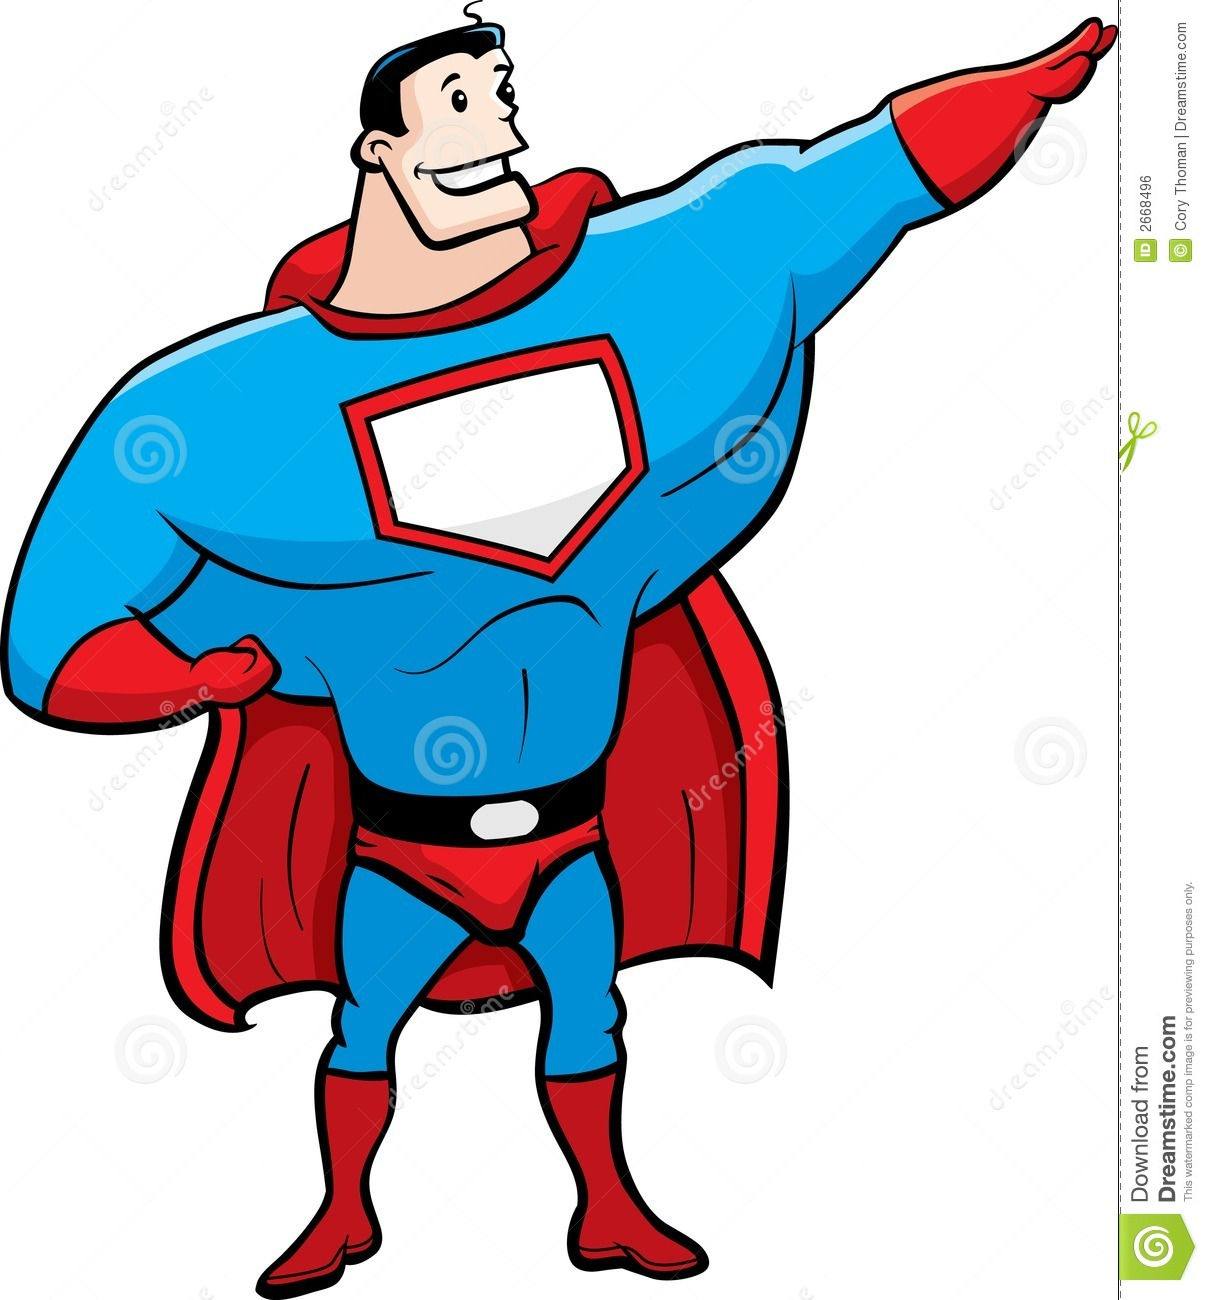 Superhero Clip Art Superhero Royalty Free Stock Image Image